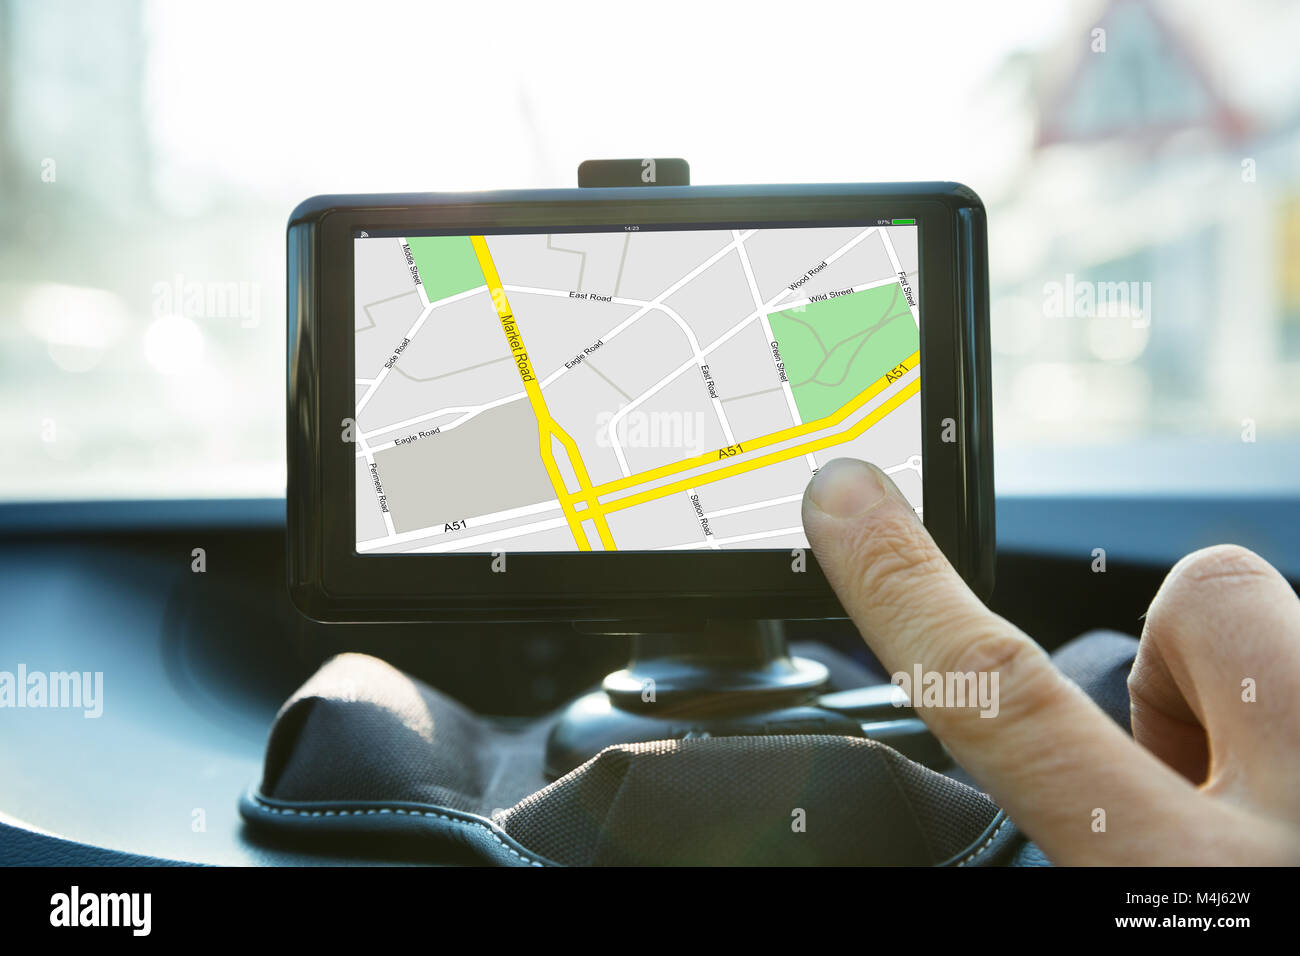 Close-up Of A Person Operating Navigational System Inside A Car - Stock Image